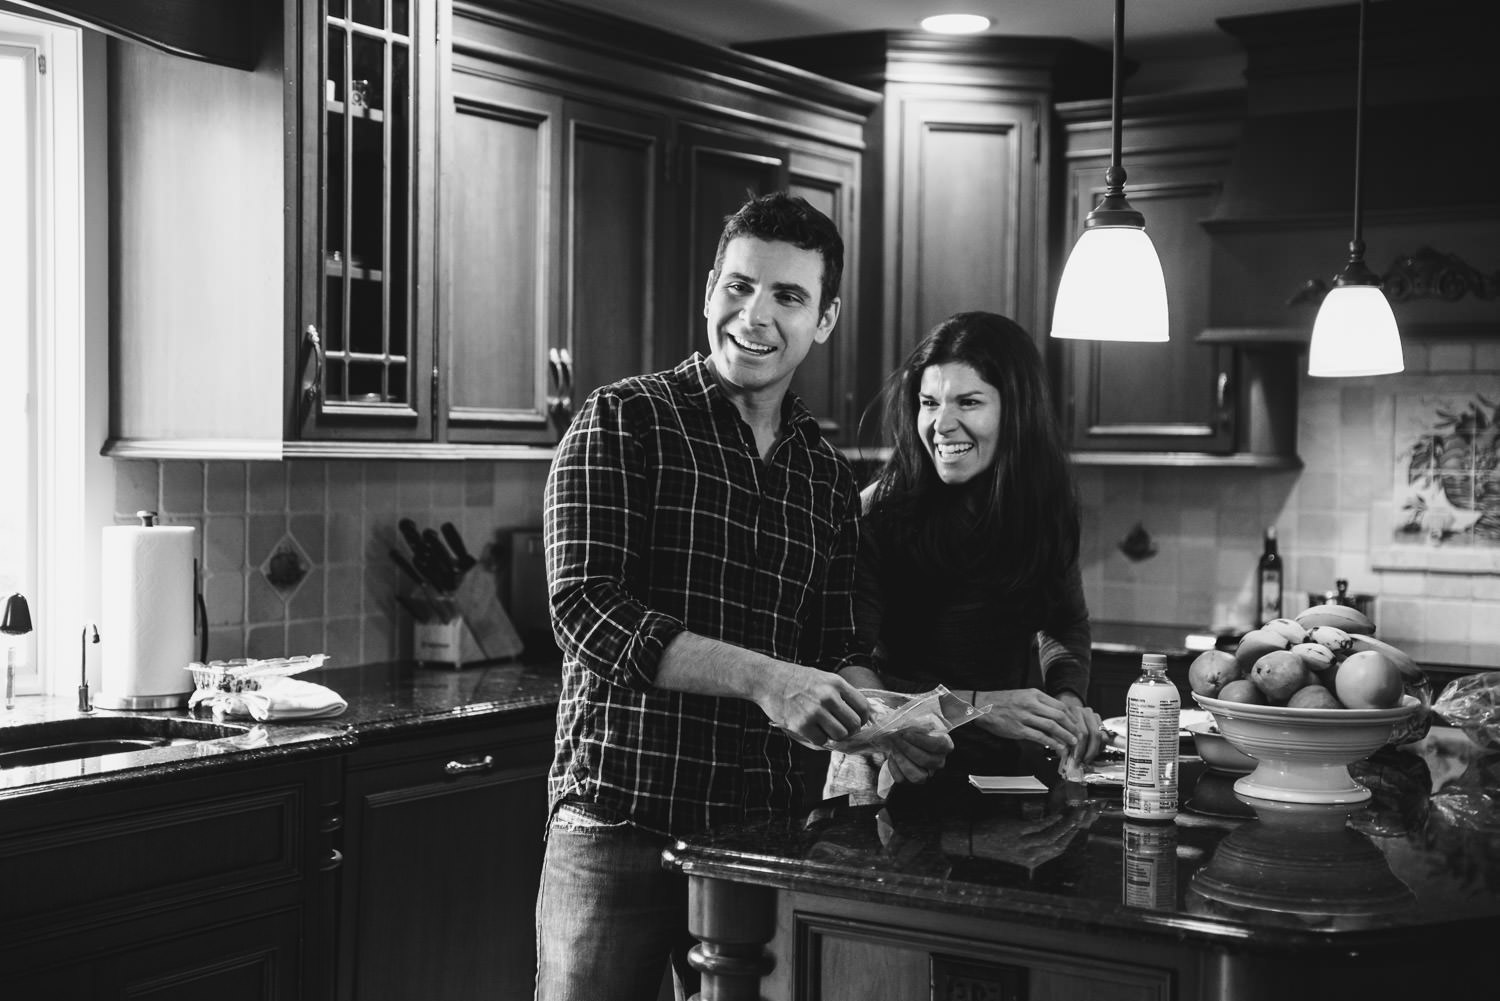 Parents smile in the kitchen.